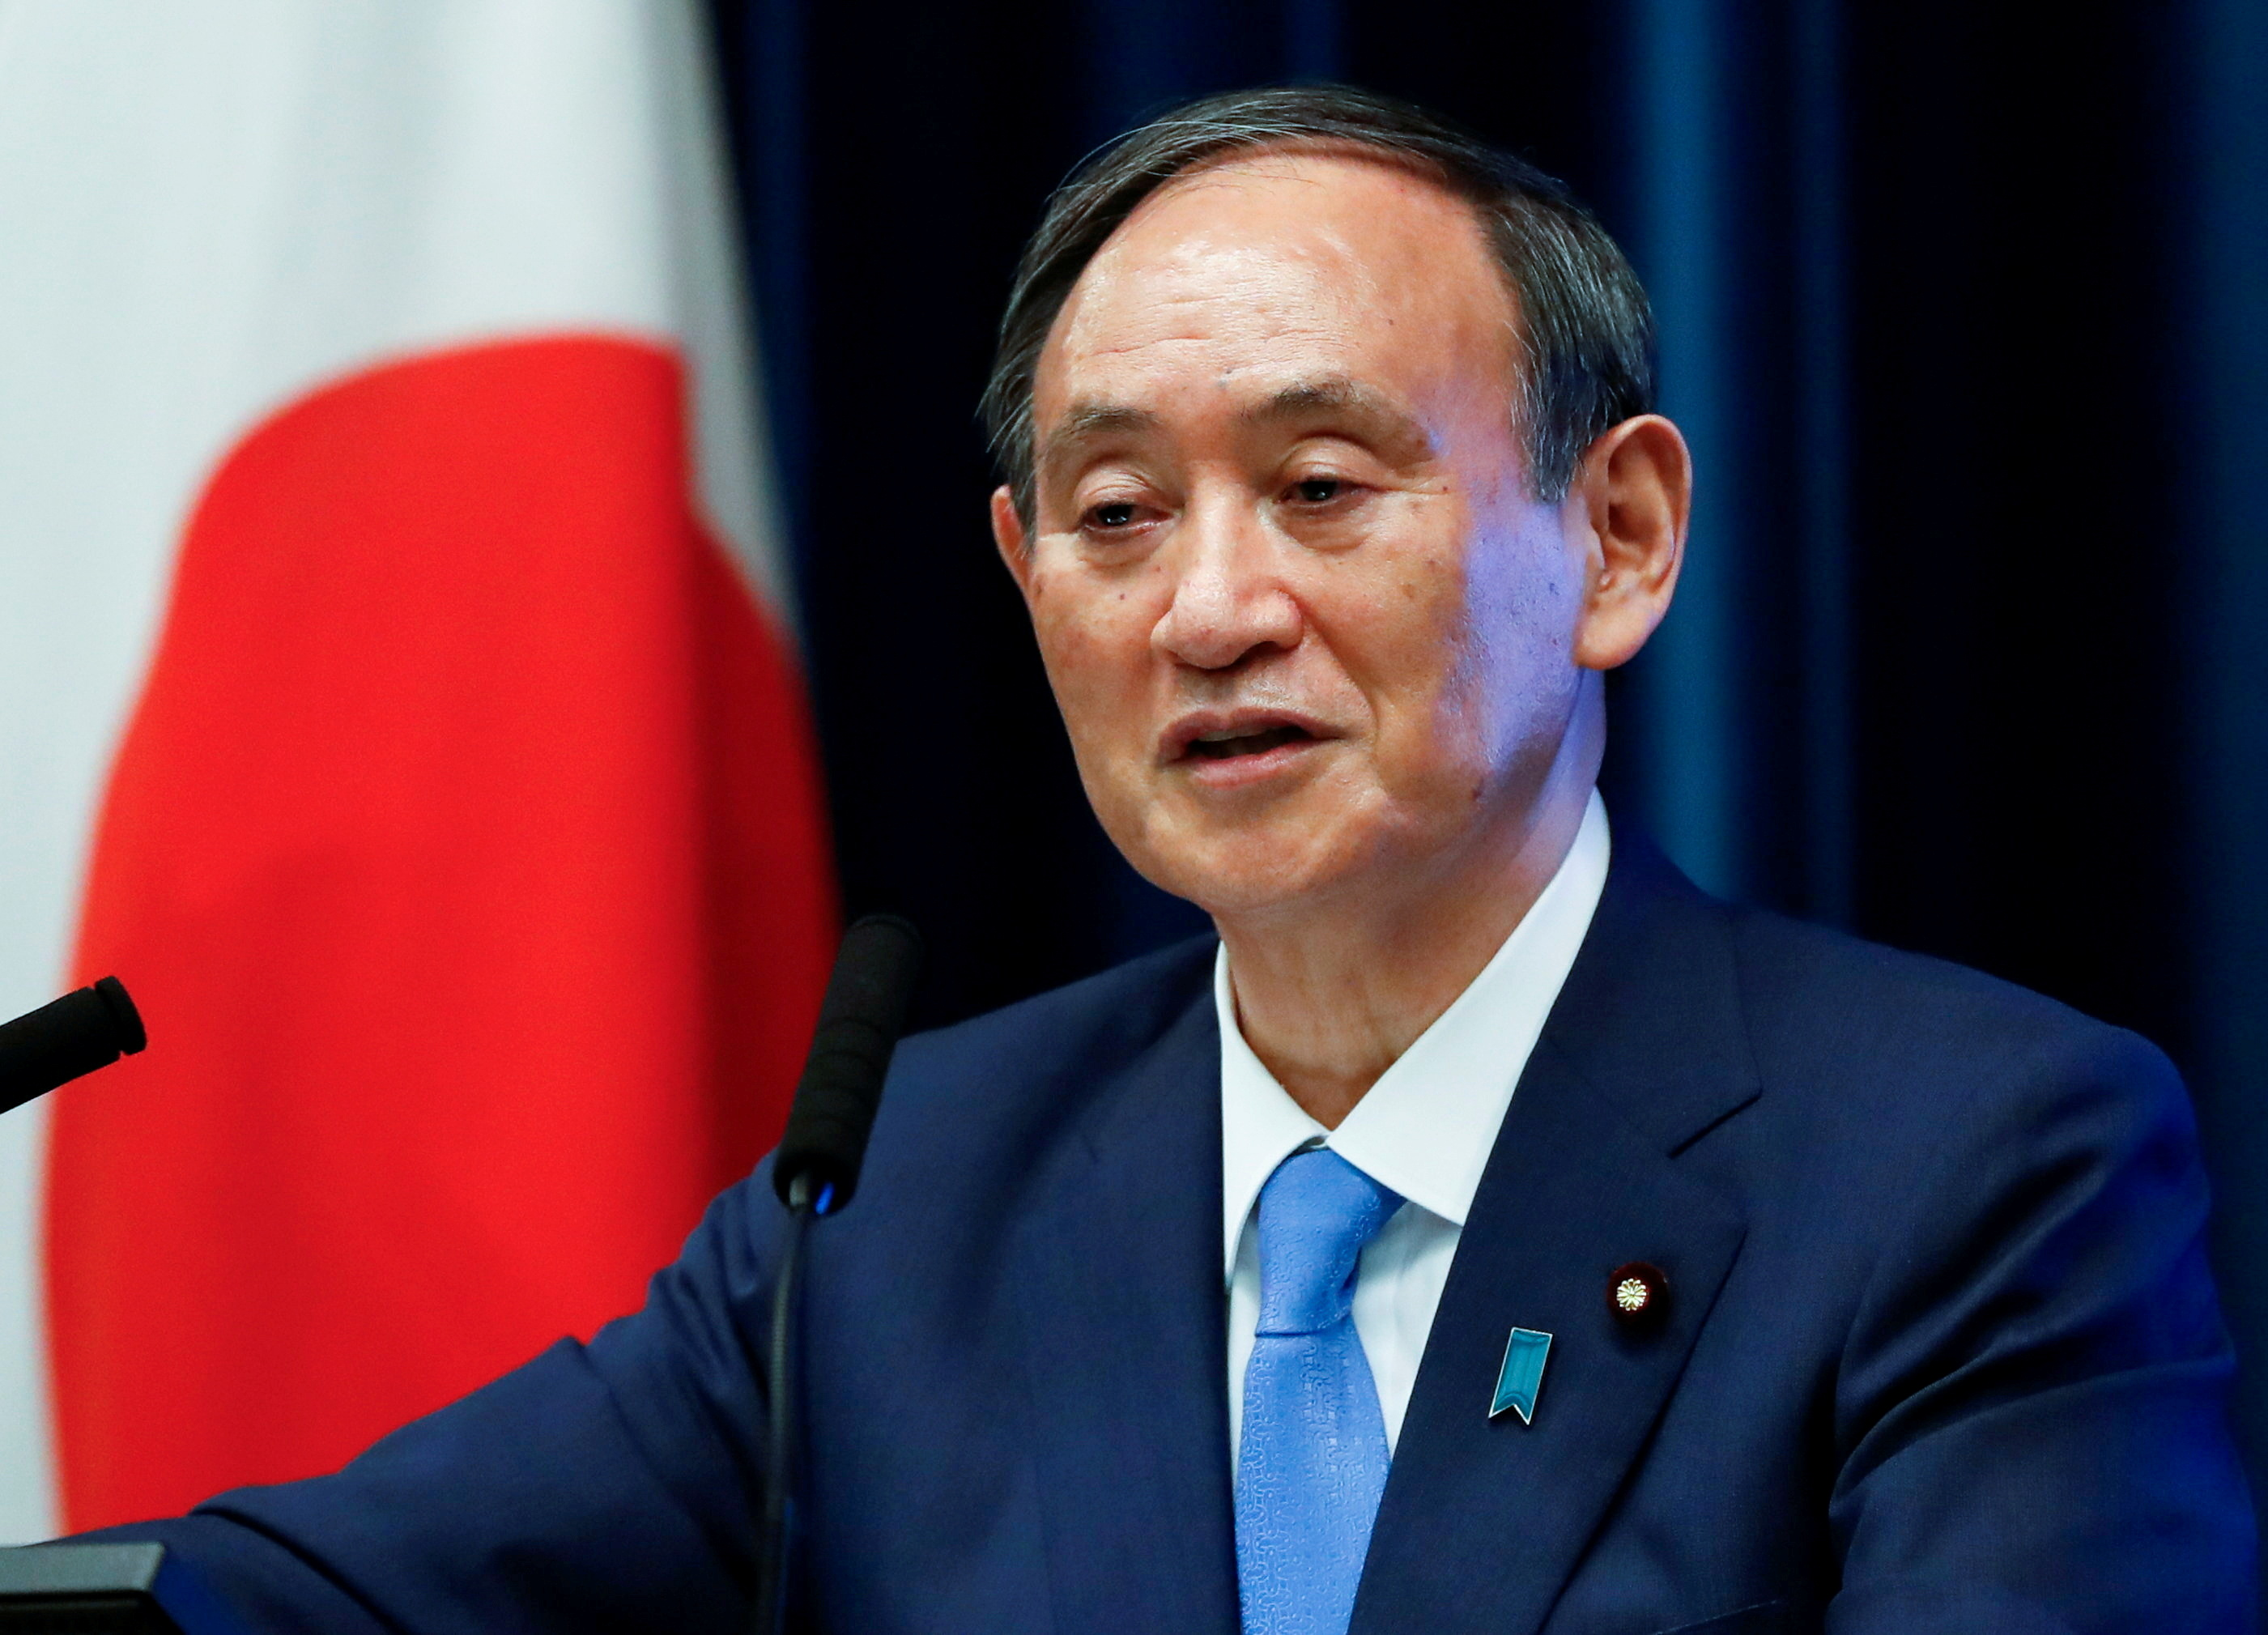 Japan's Prime Minister Yoshihide Suga attends a news conference on Japan's response to the coronavirus disease (COVID-19) outbreak, at his official residence in Tokyo, Japan, June 17, 2021. REUTERS/Issei Kato/Pool/File Photo